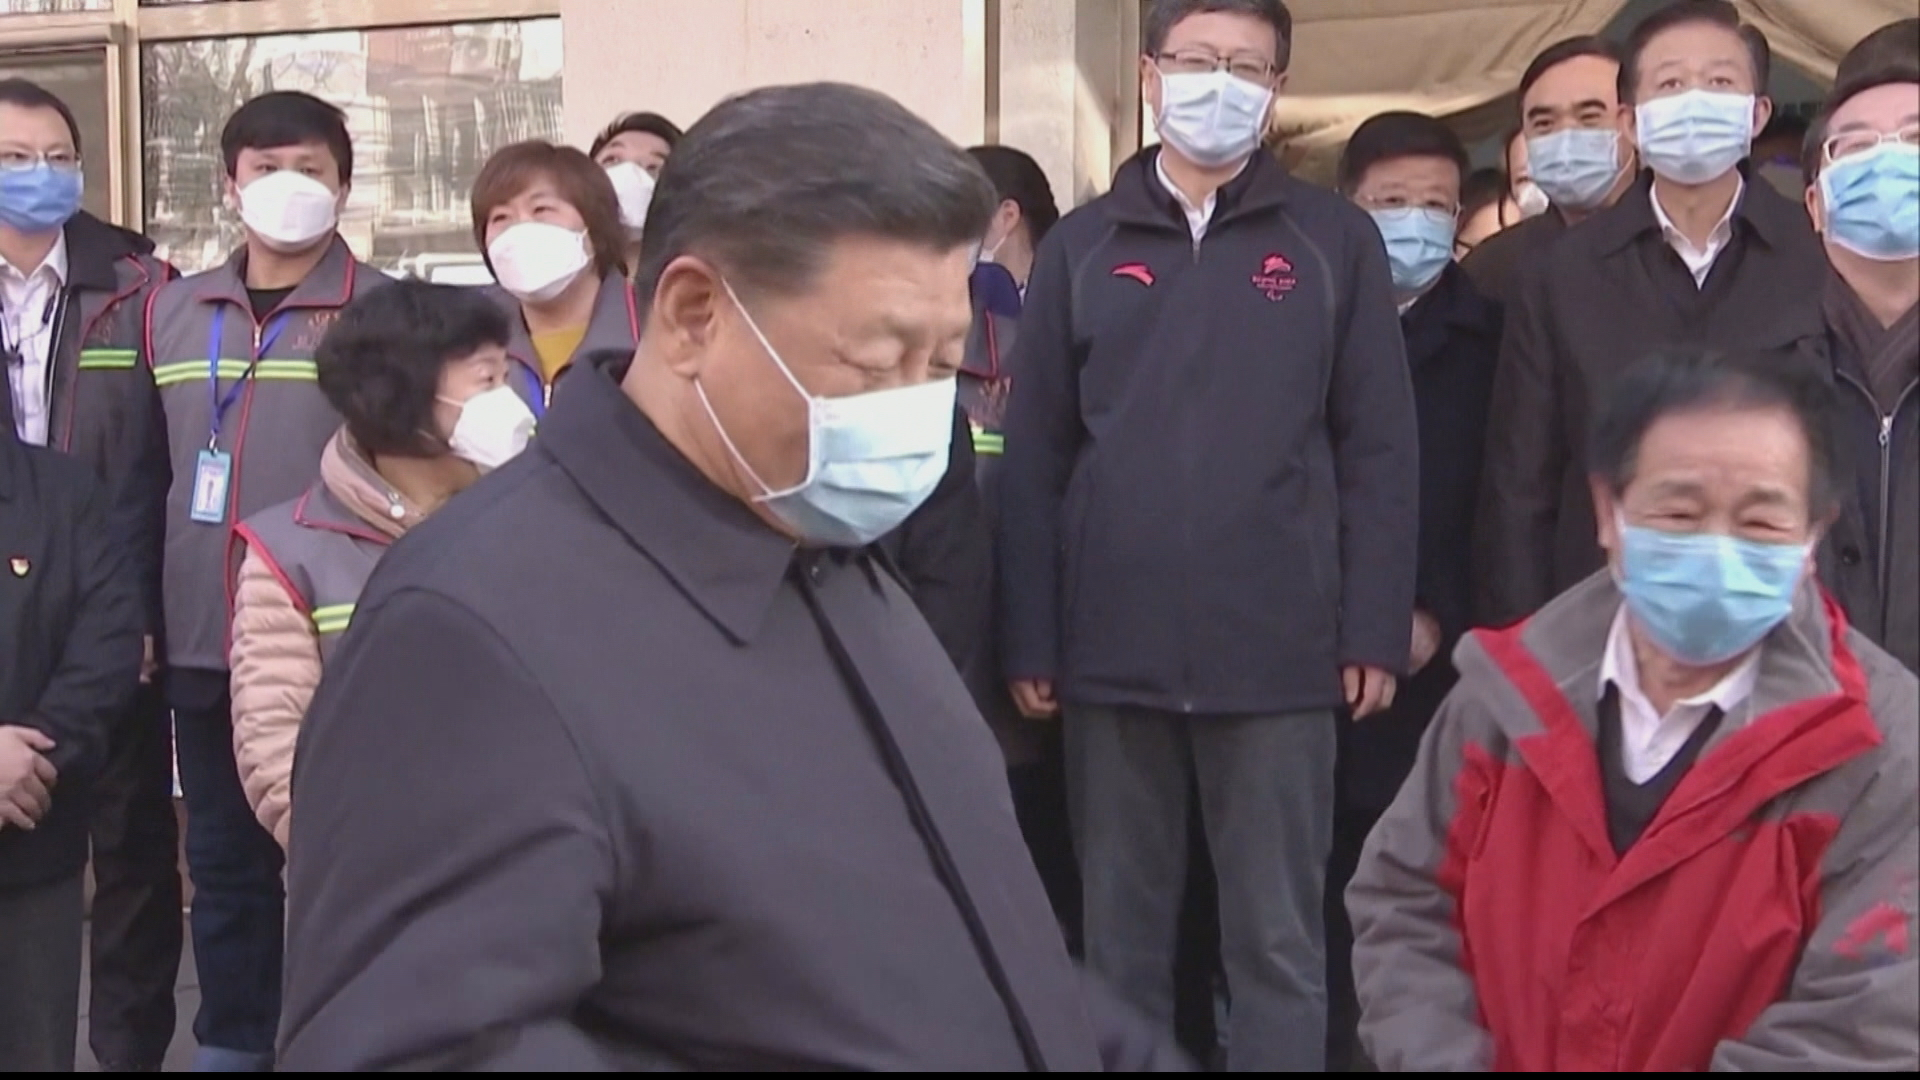 Controversy Over Chinese Government Response To Coronavirus